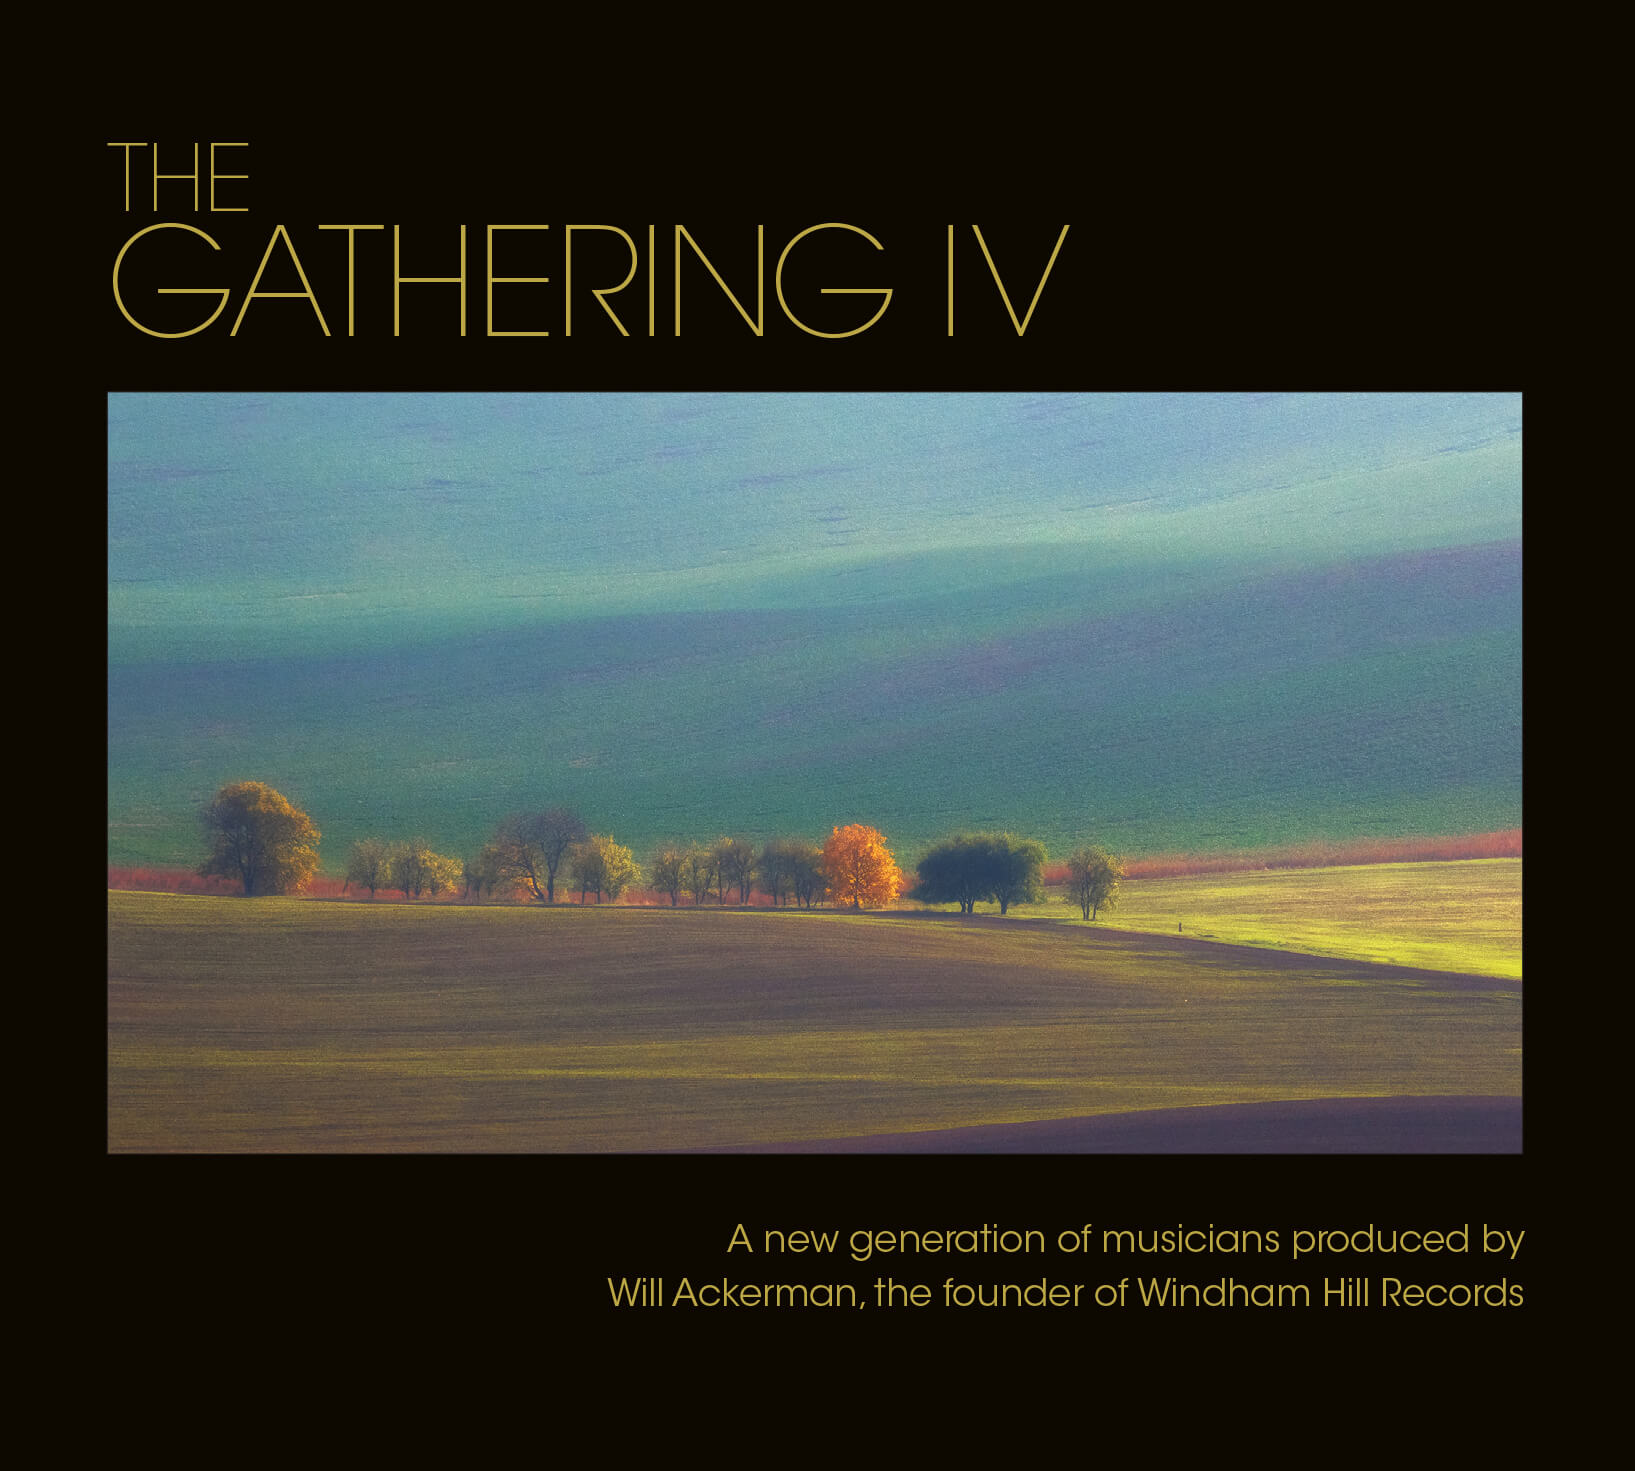 The Gathering IV